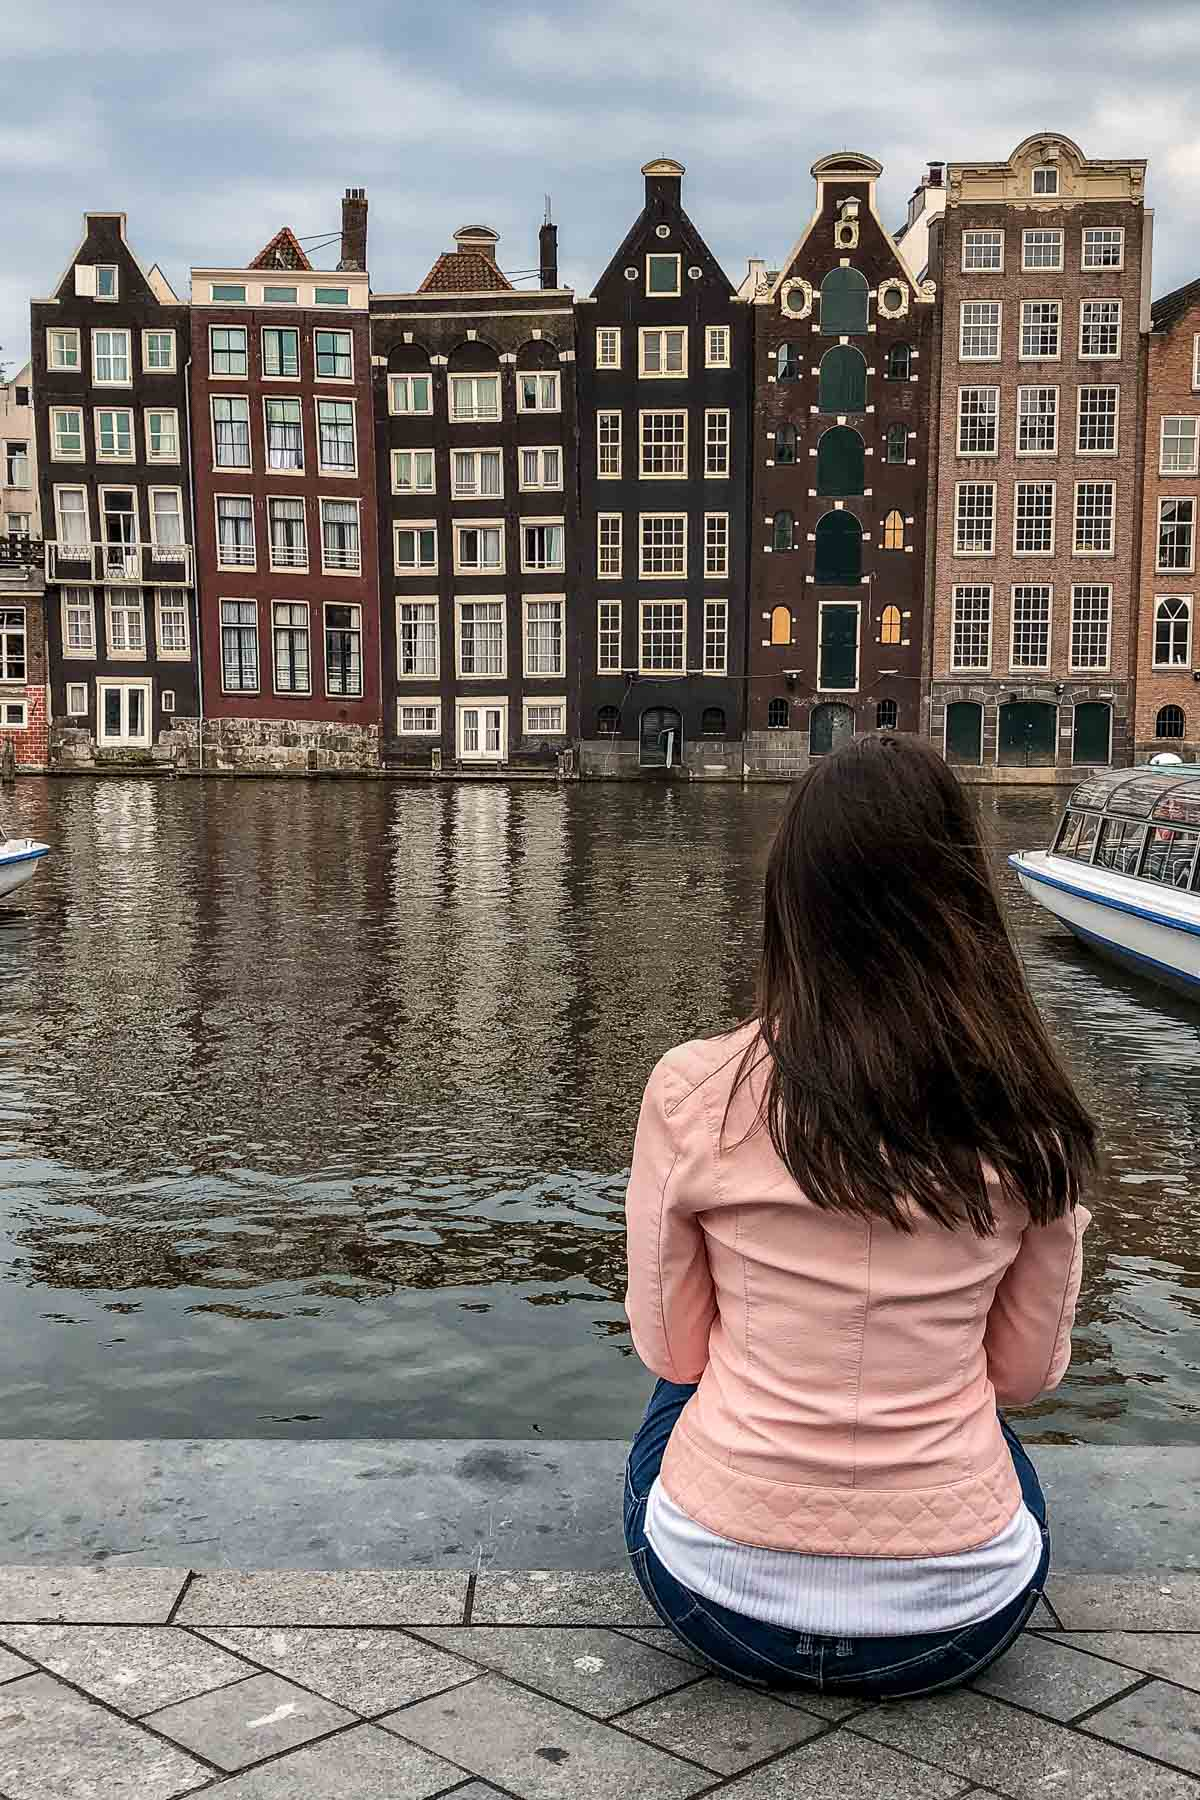 Girl in a pink jacket sitting in front of the crooked houses in Amsterdam